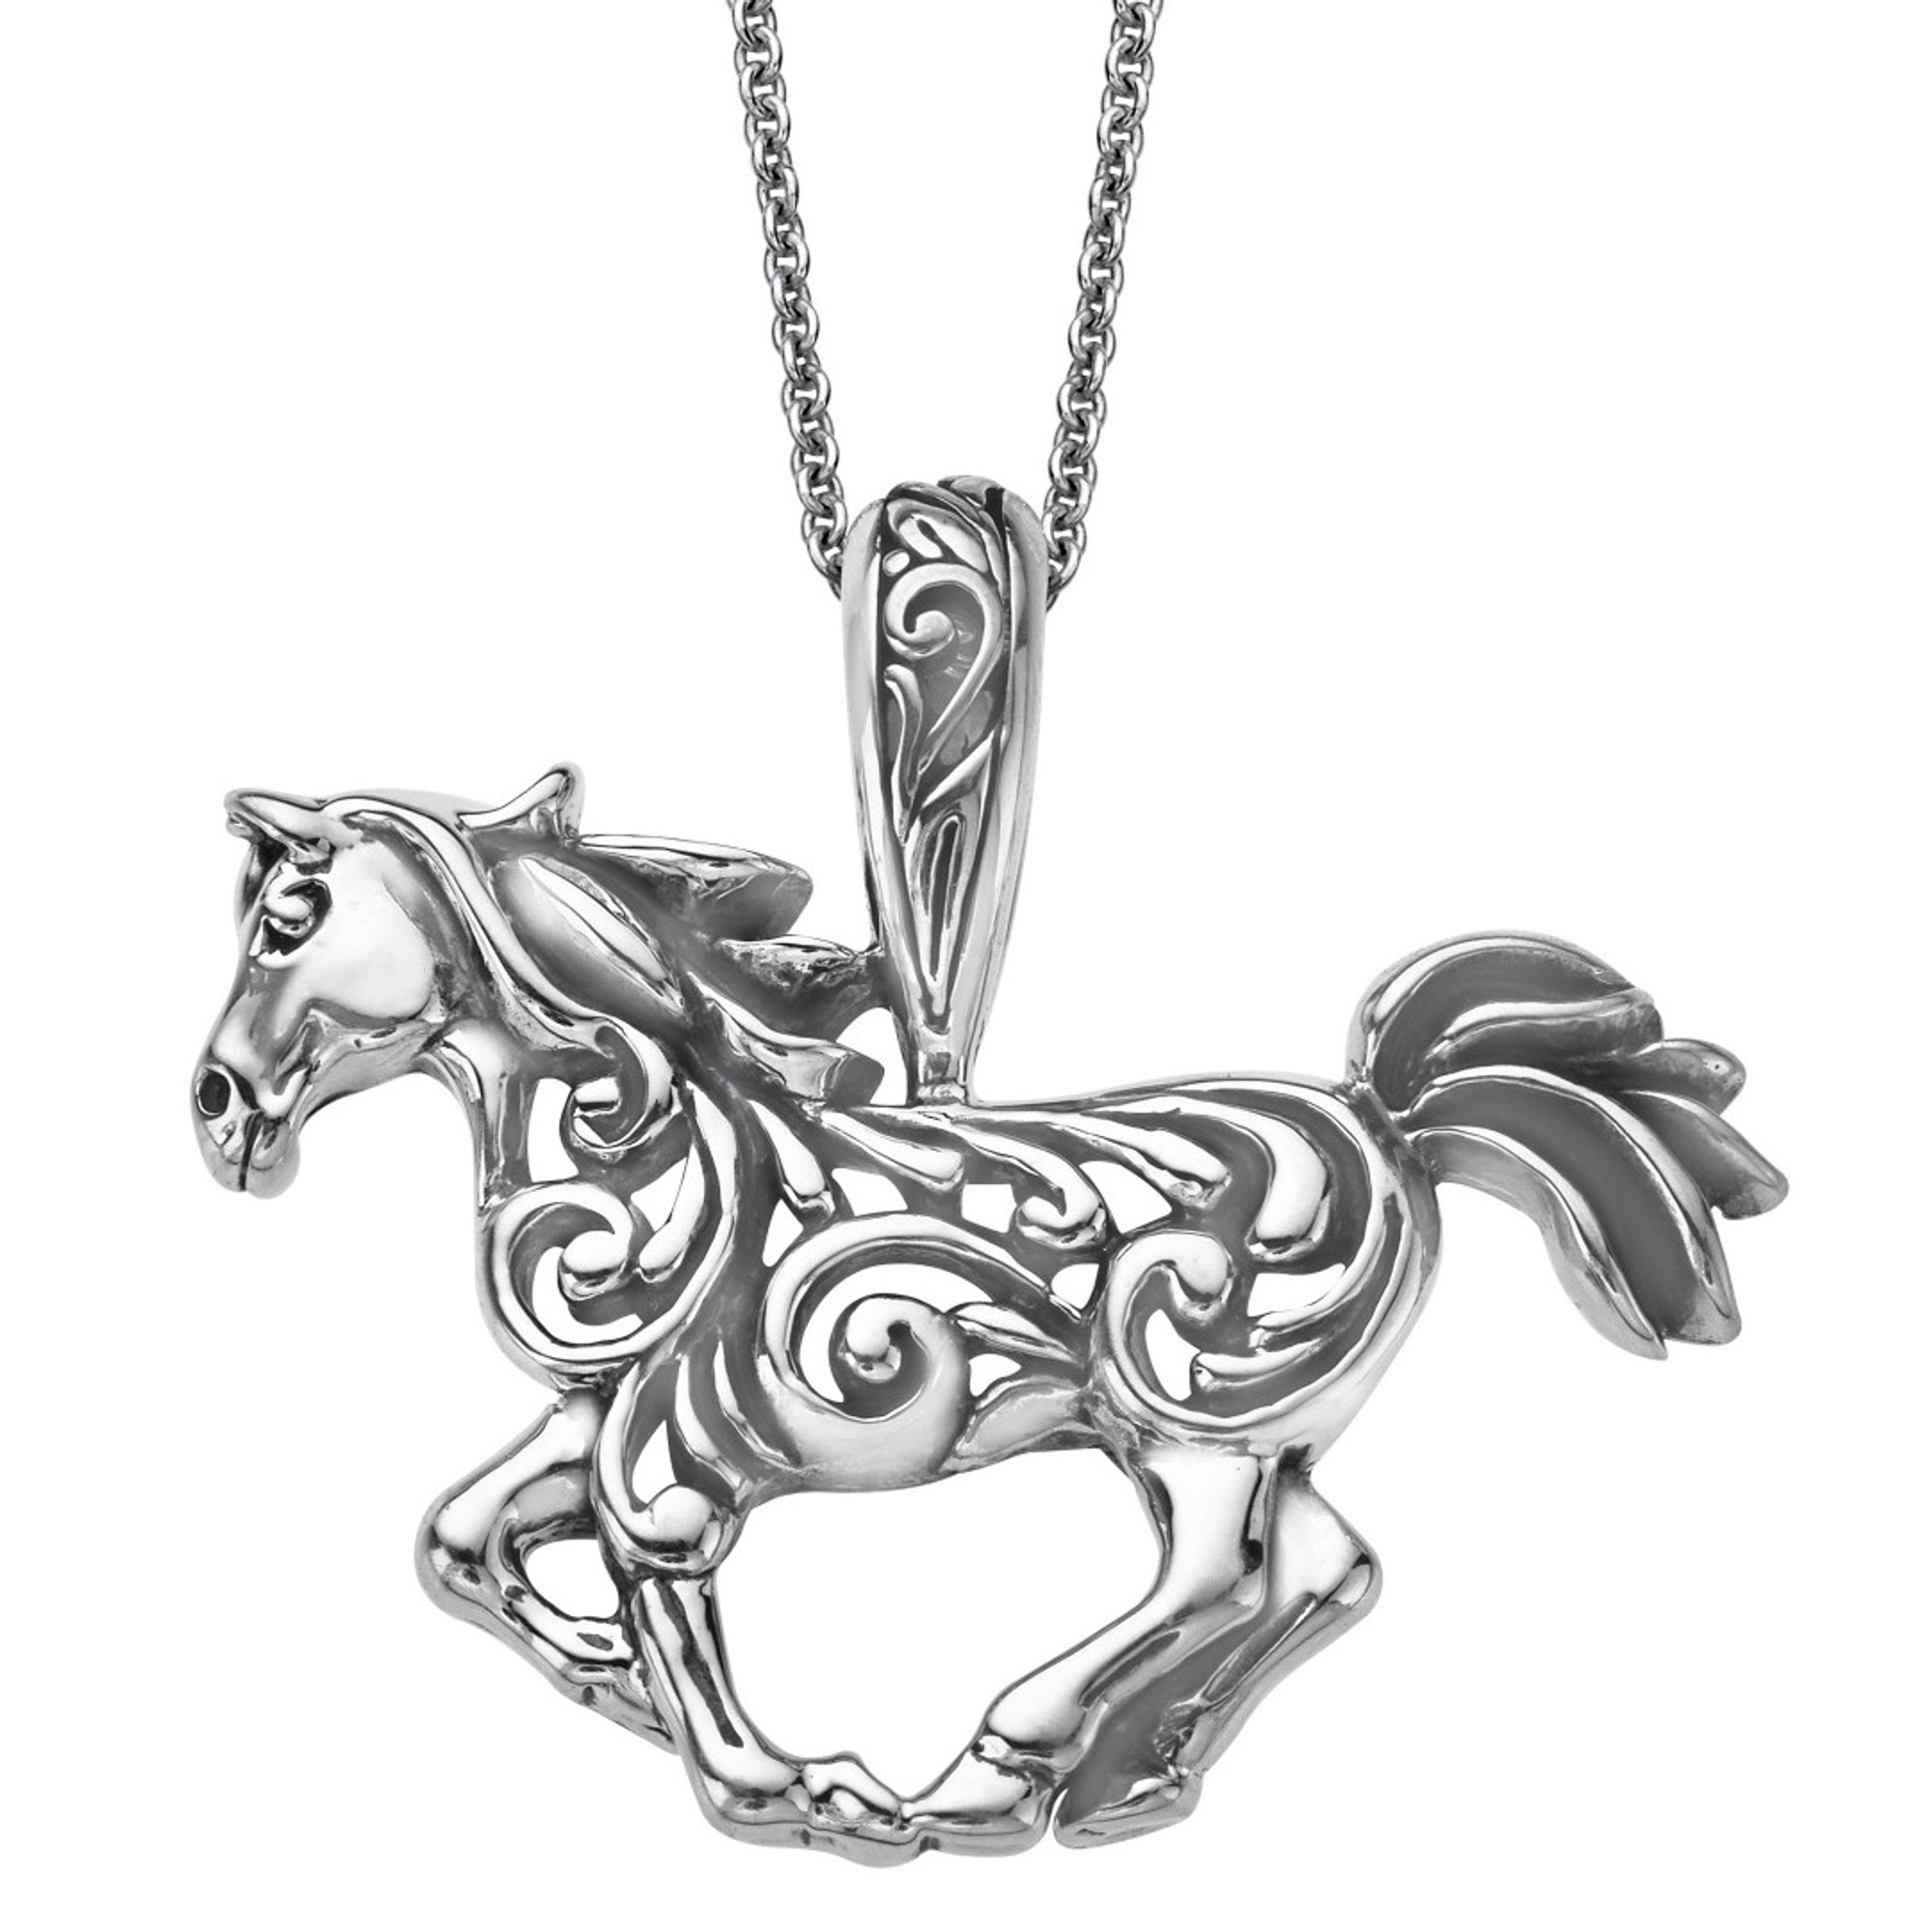 Horse scroll pendant necklace sterling silver kabana horse scroll pendant sterling silver necklace kabana jewelry ksp506 aloadofball Images